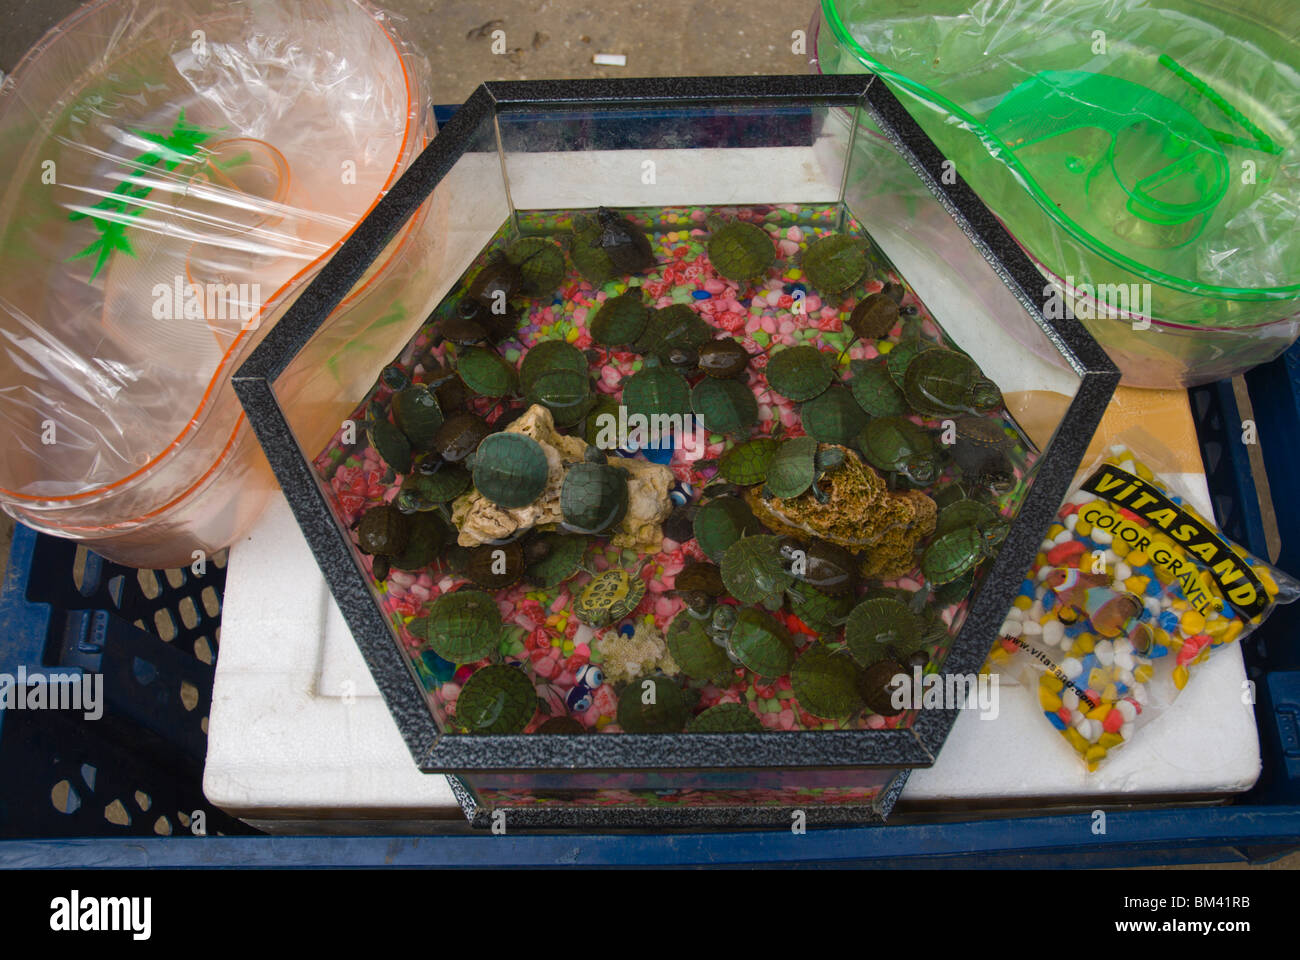 baby turtles for sale at spice bazaar market in sultanahmet